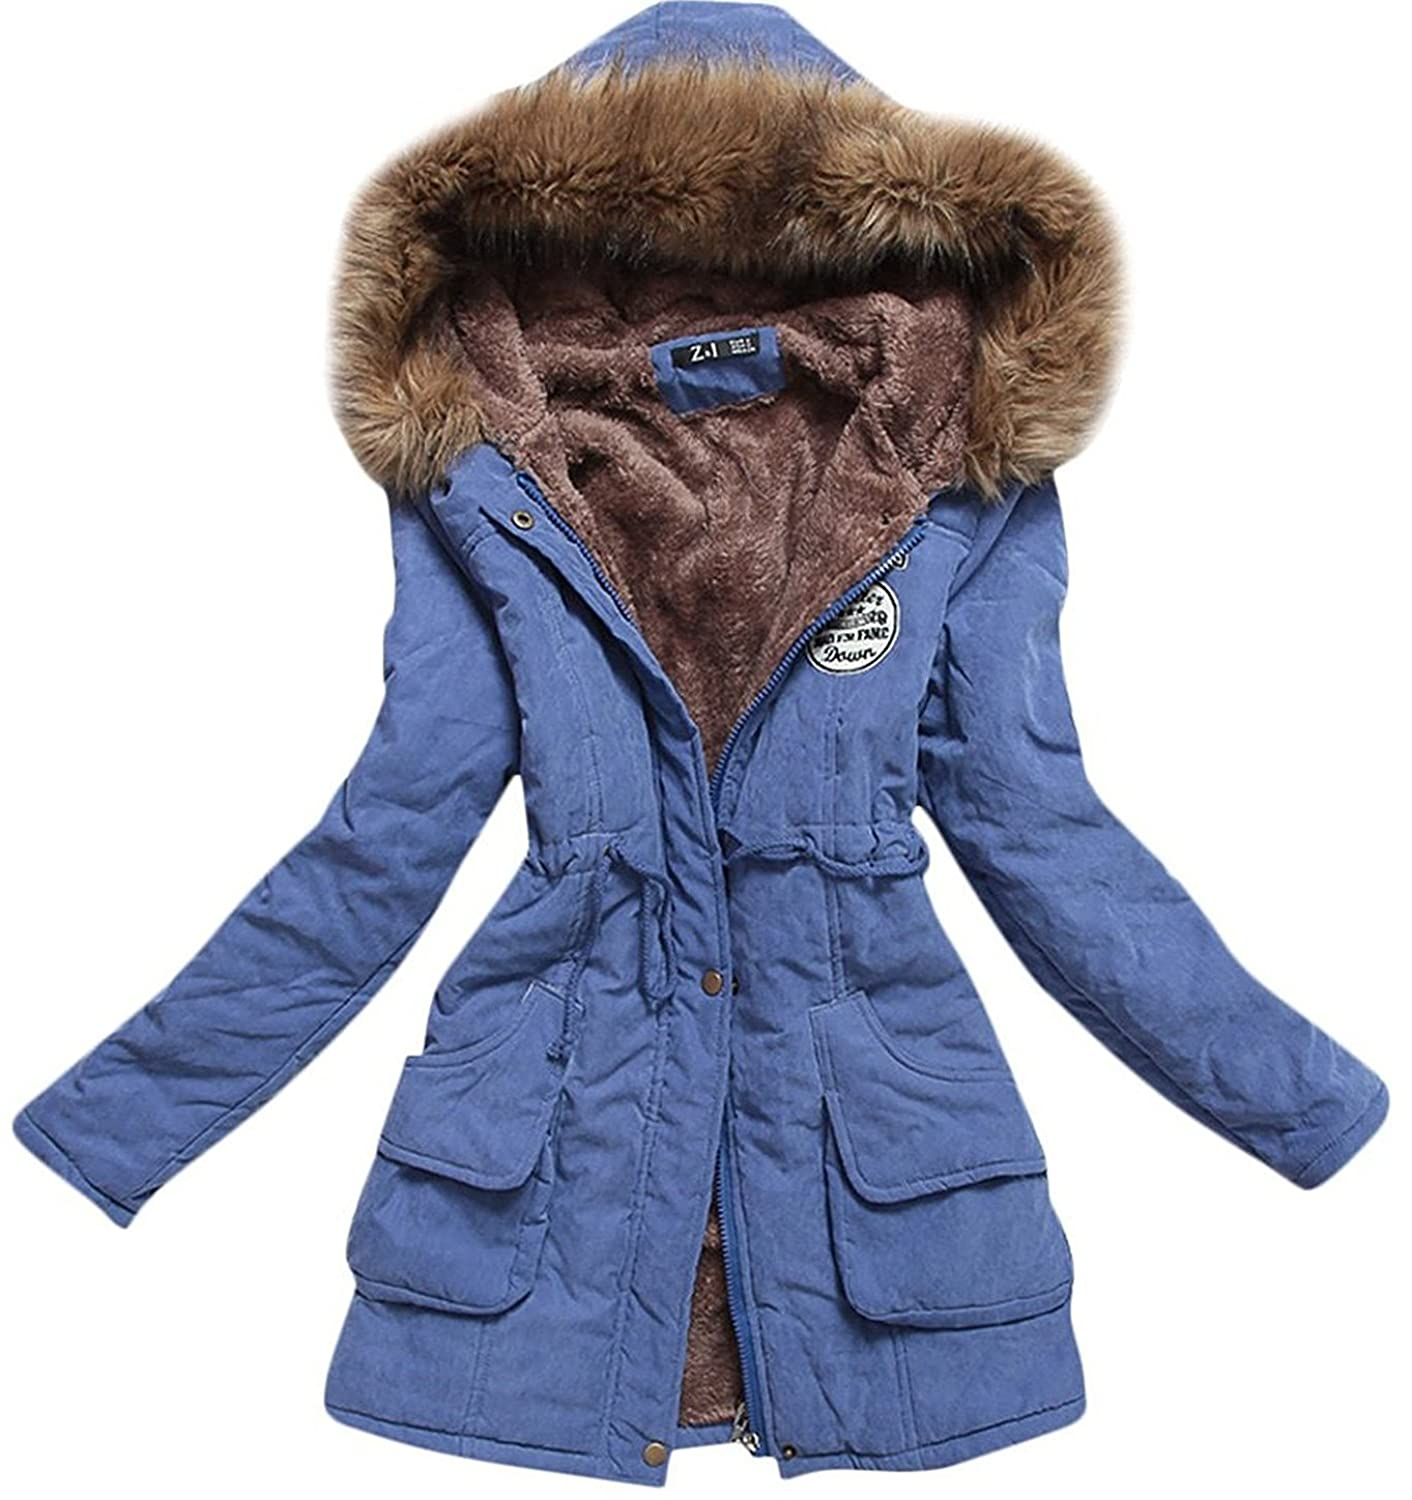 Aro Lora Women's Winter Warm Faux Fur Hooded Cotton-padded Coat ...